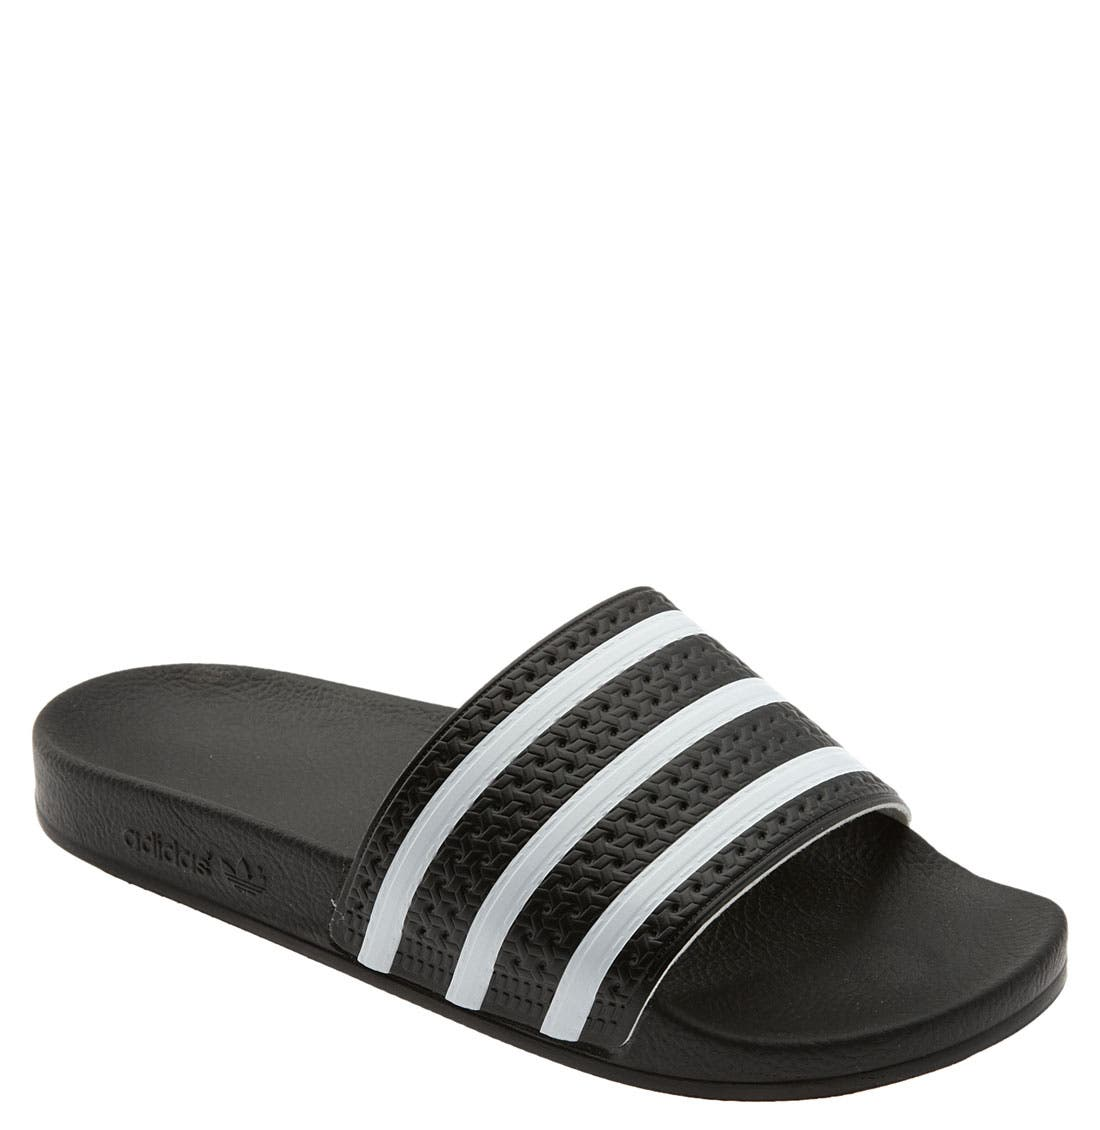 'Adilette' Slide Sandal,                         Main,                         color, BLACK/ WHITE/ BLACK